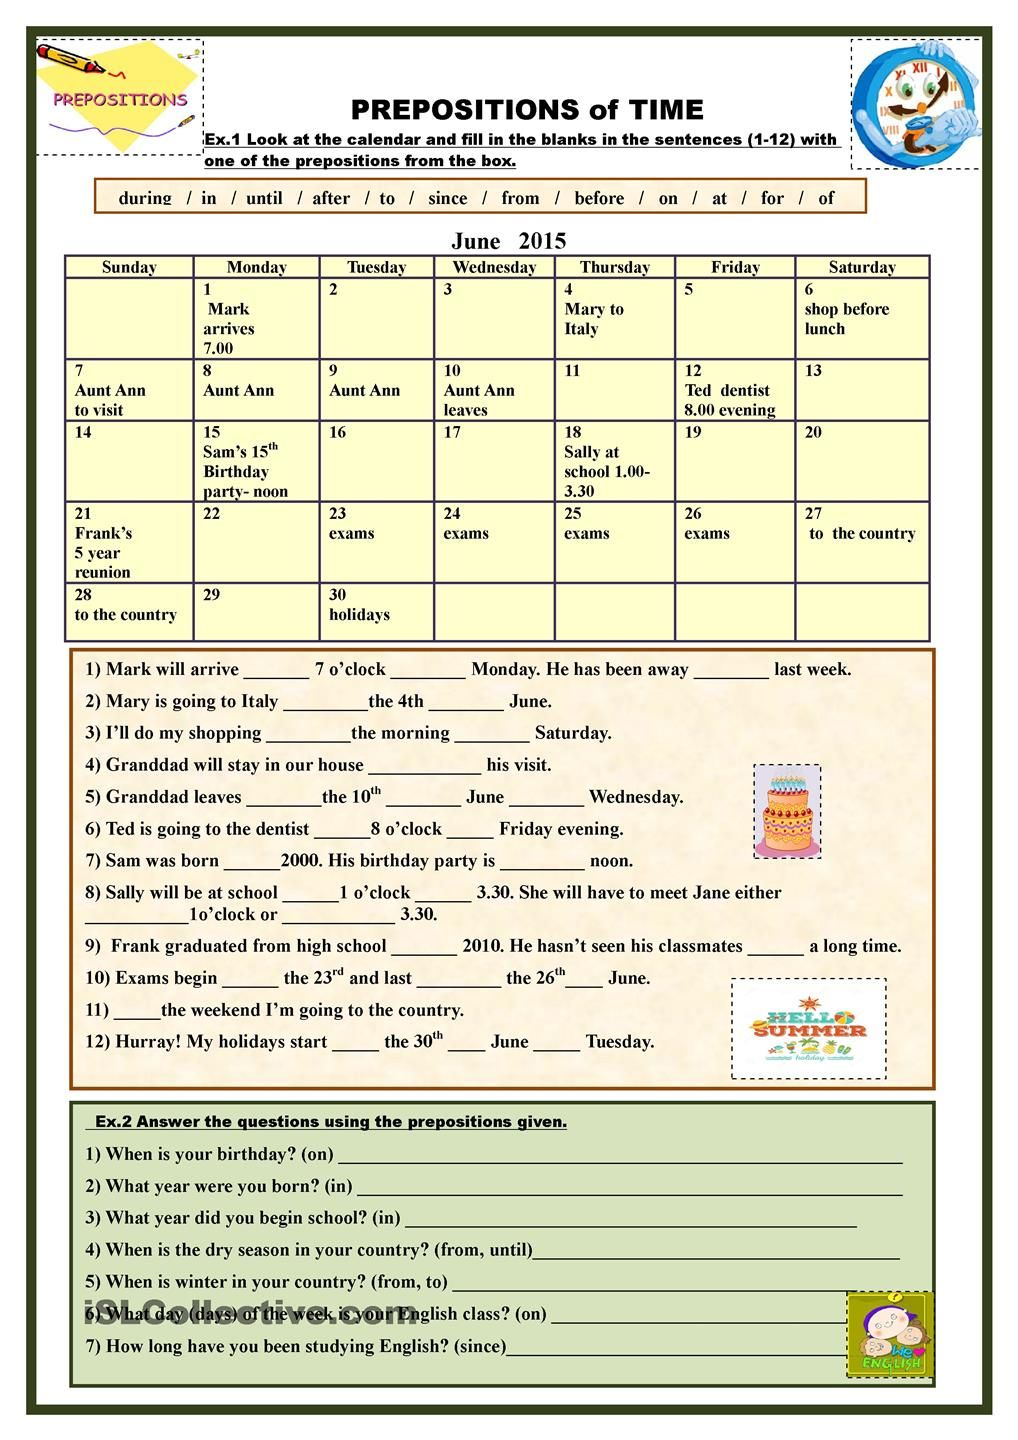 Prepositions Of Time Prepositions Prepositional Phrases Learn English